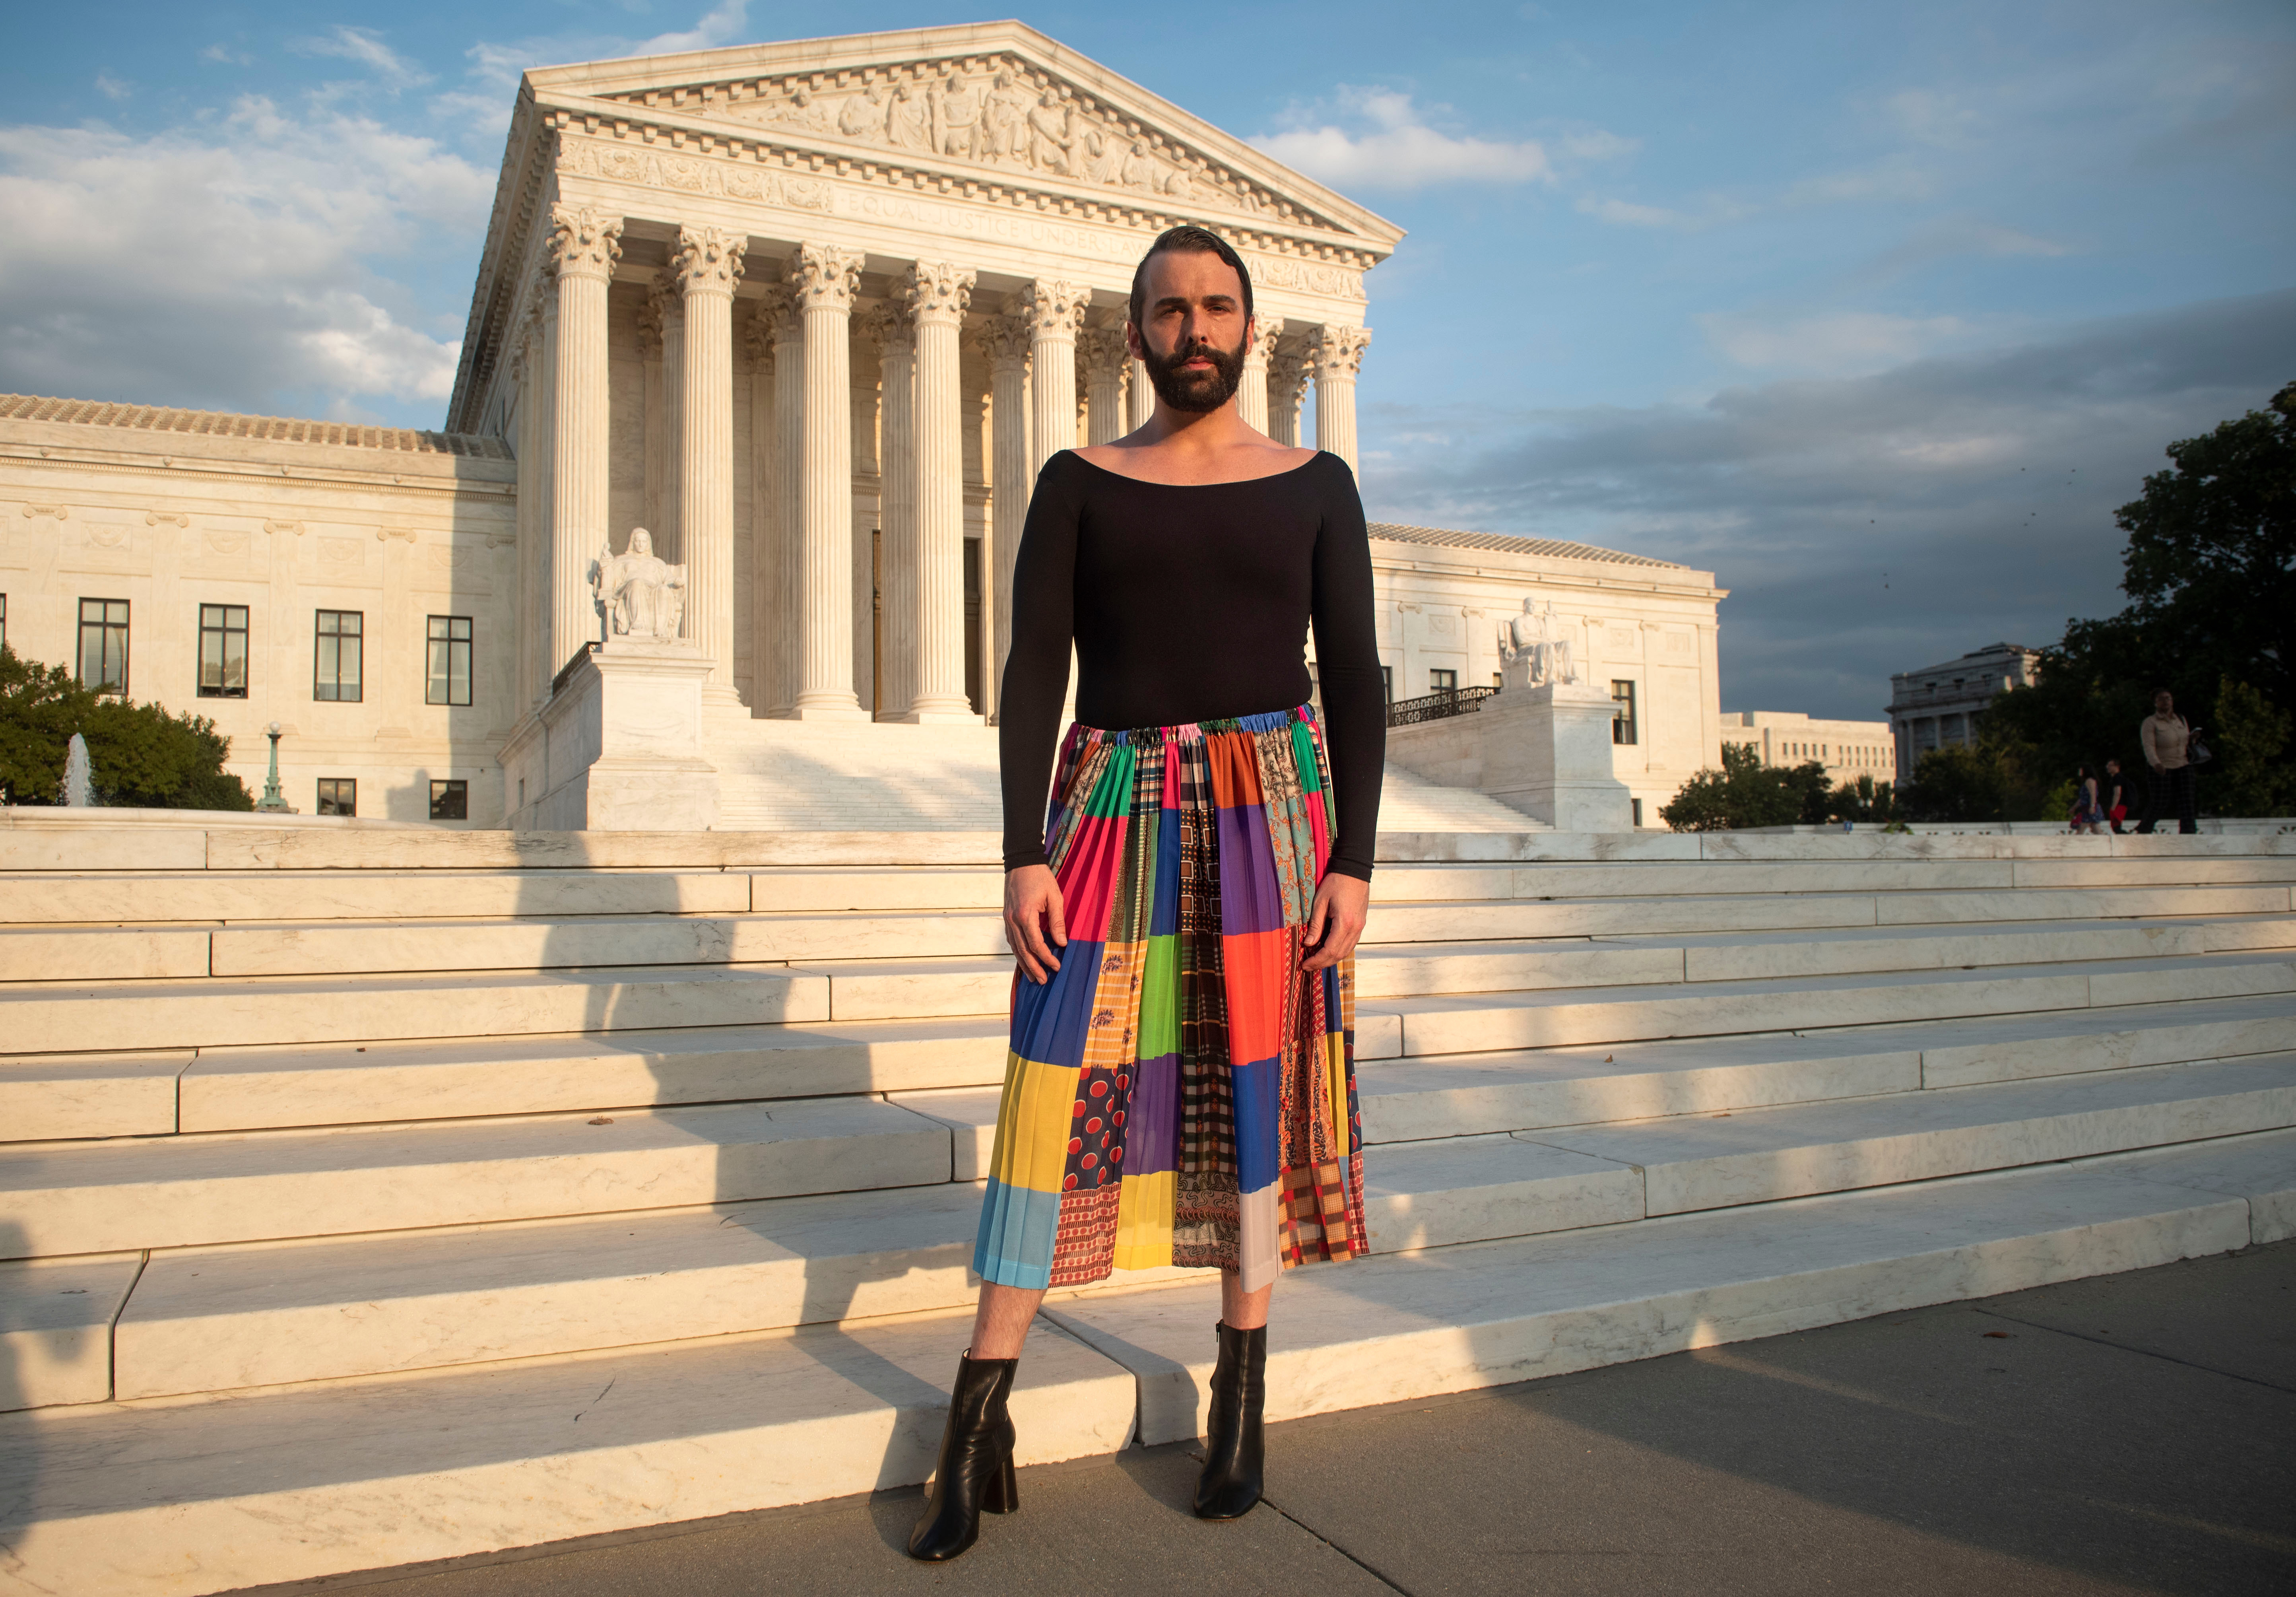 Queer Eye star and author Jonathan Van Ness is photographed in front of the Supreme Court after spending the day with Human Rights Campaign volunteers meeting with members of Congress and encouraging support for issues critical to the LGBTQ community on in WashingtonHRC 2019 Lobby Day, Washington, USA - 26 Sep 2019